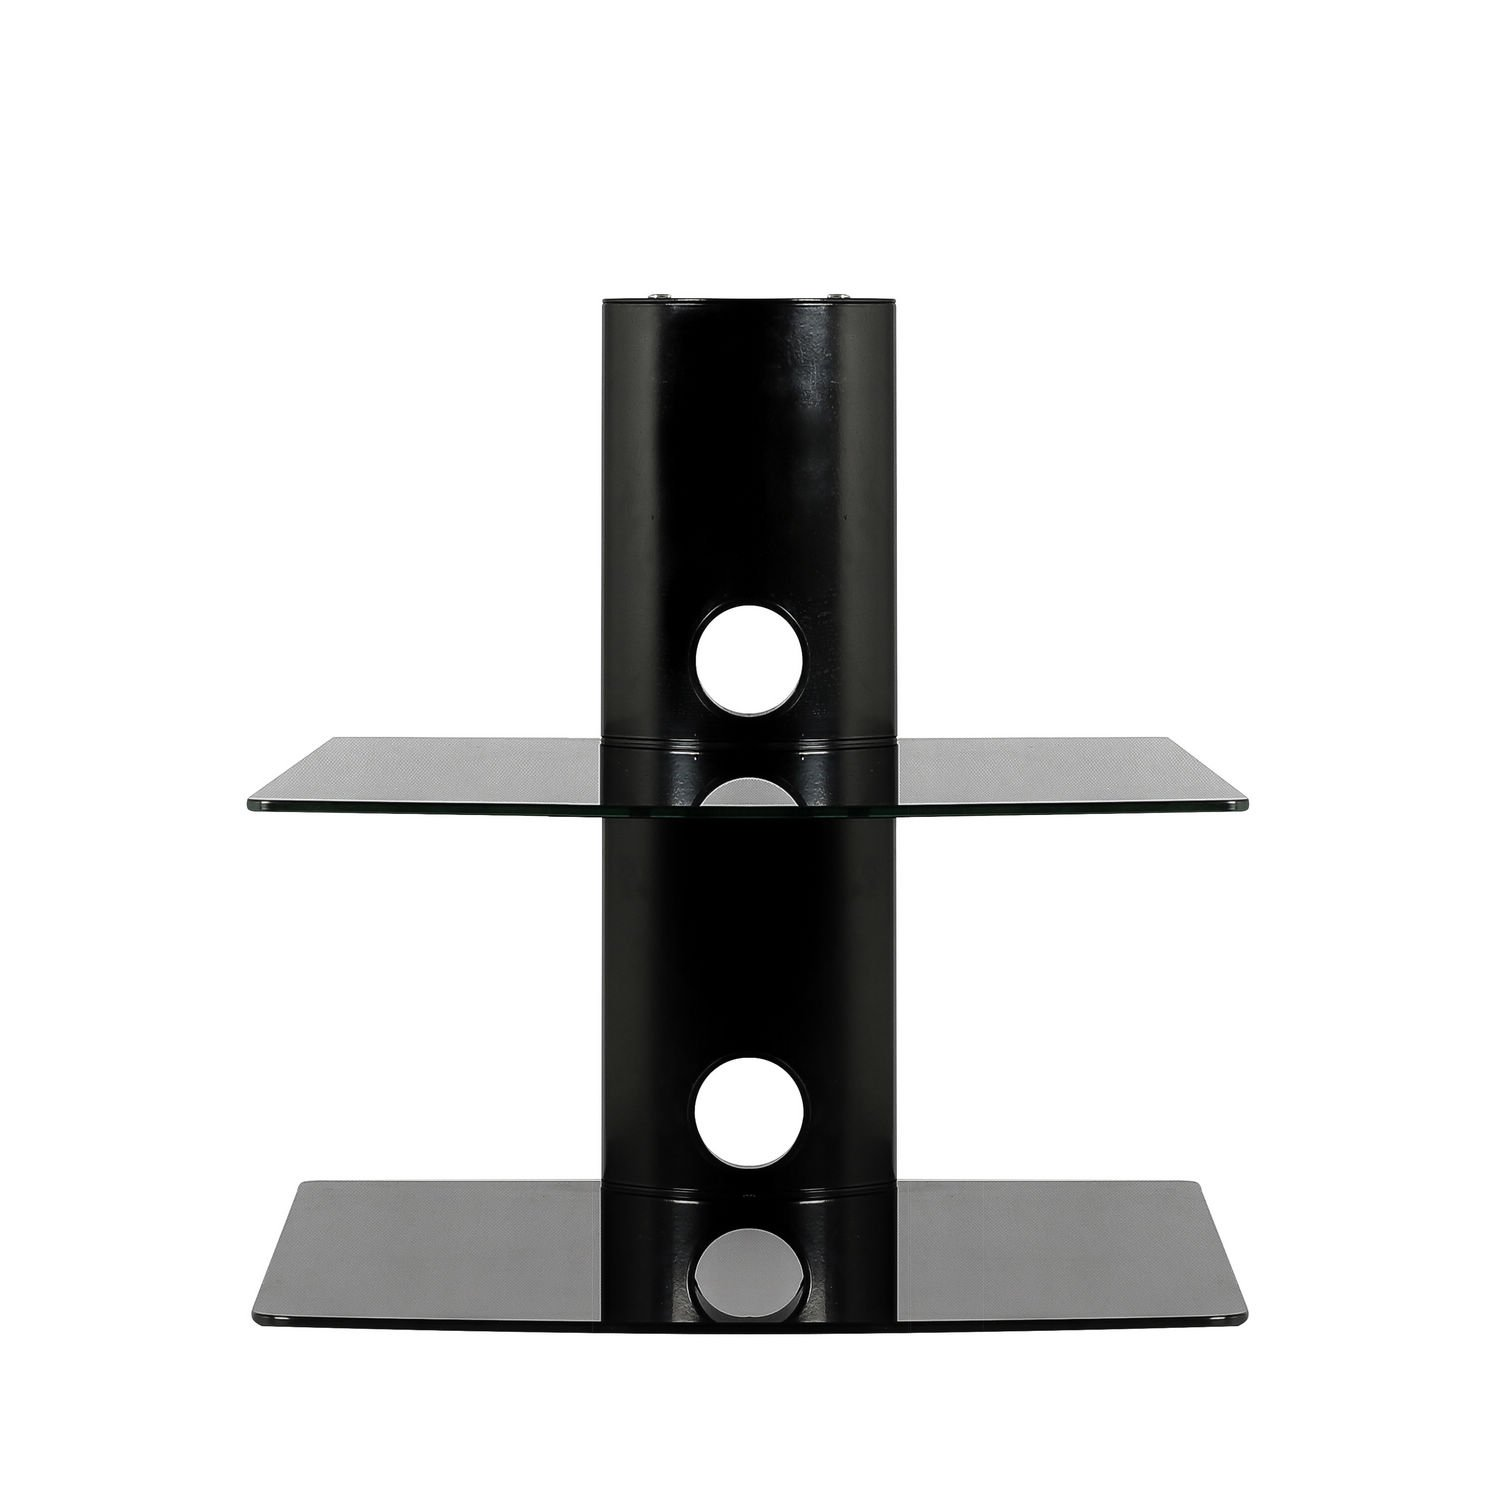 sevenfans floating shelf wall mounted tempered glass shelves for dvd player receiver accessories black tier load capacity kitchen threshold set weathered finish gloss furniture